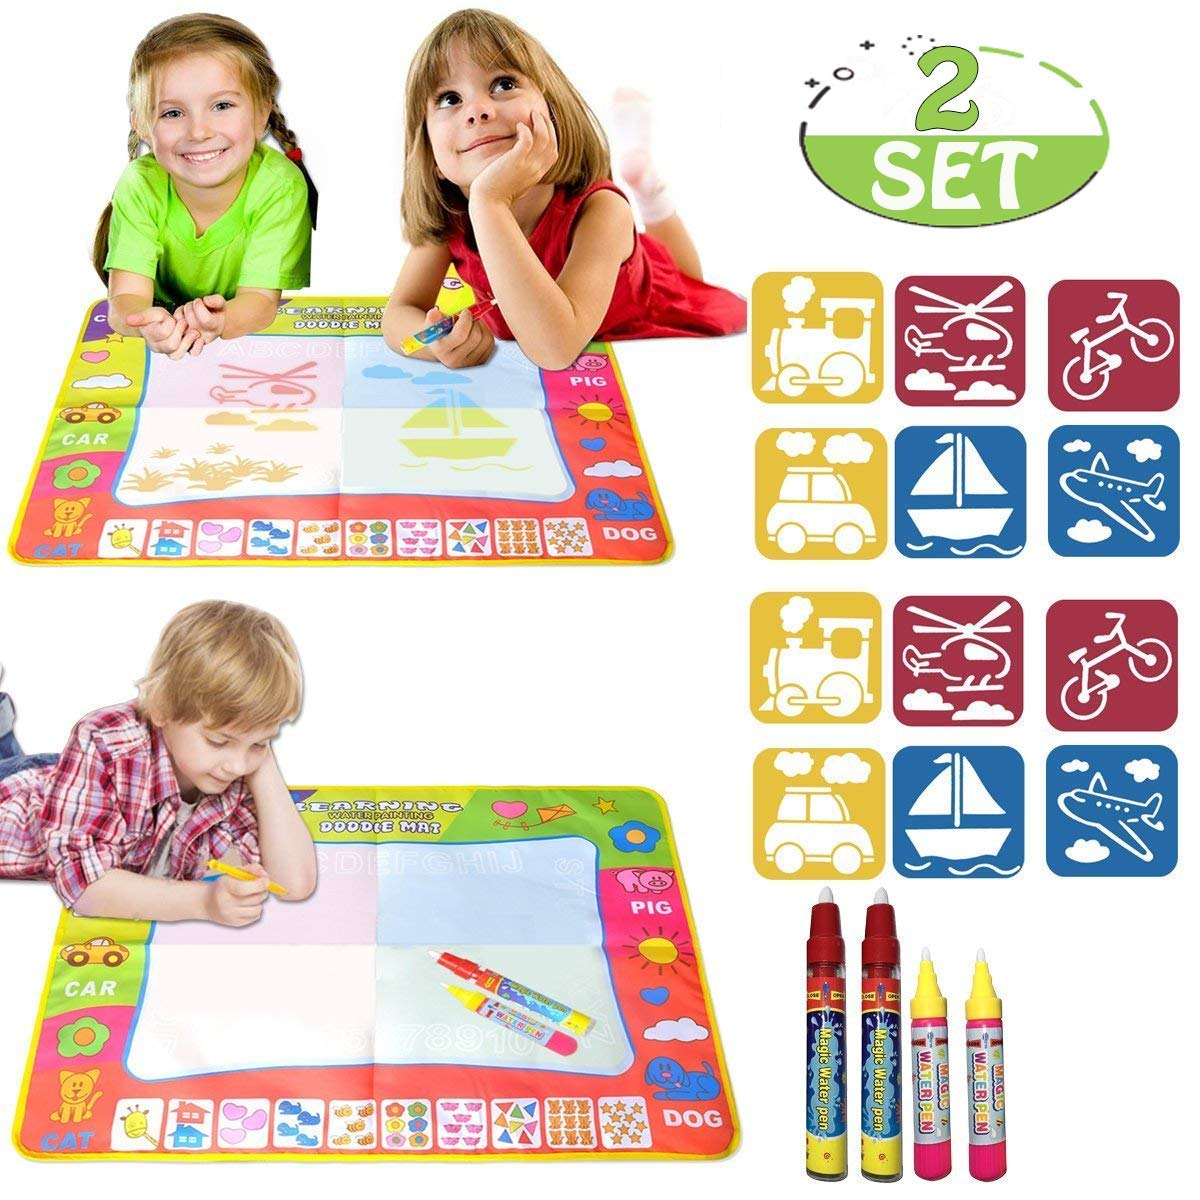 EXSPORT Aqua Doodle Mat 4 Color Children Water Magic Drawing Book Mat Board & 2 Magic Pens & 6 drawing formwork Doodle Kids Educational Toy Gift for Boys Girls 31.5'' x 23.6''(2 sets)